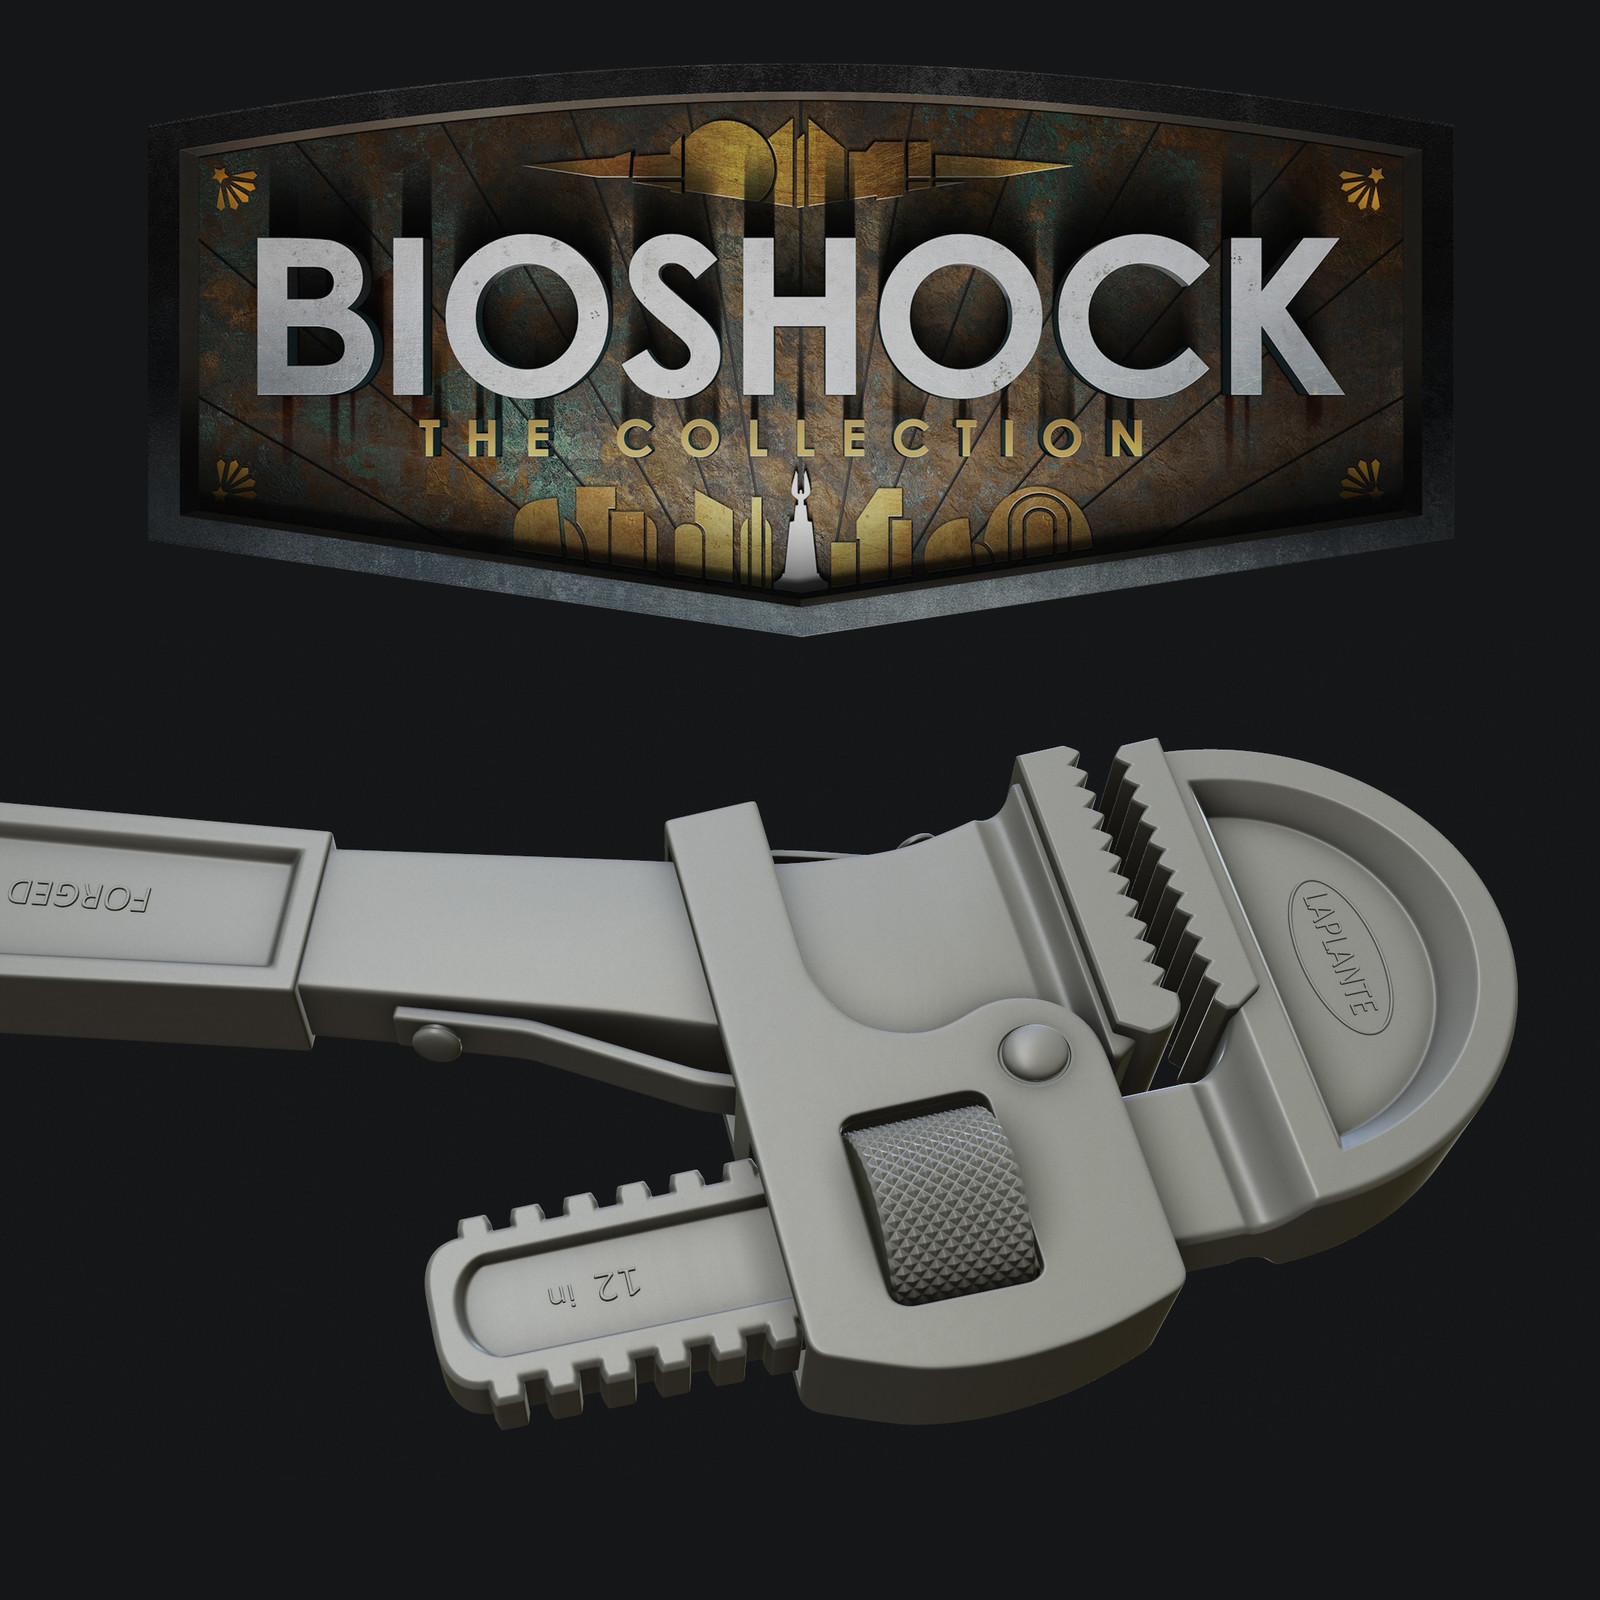 Bioshock: The Collection - Wrench High Poly